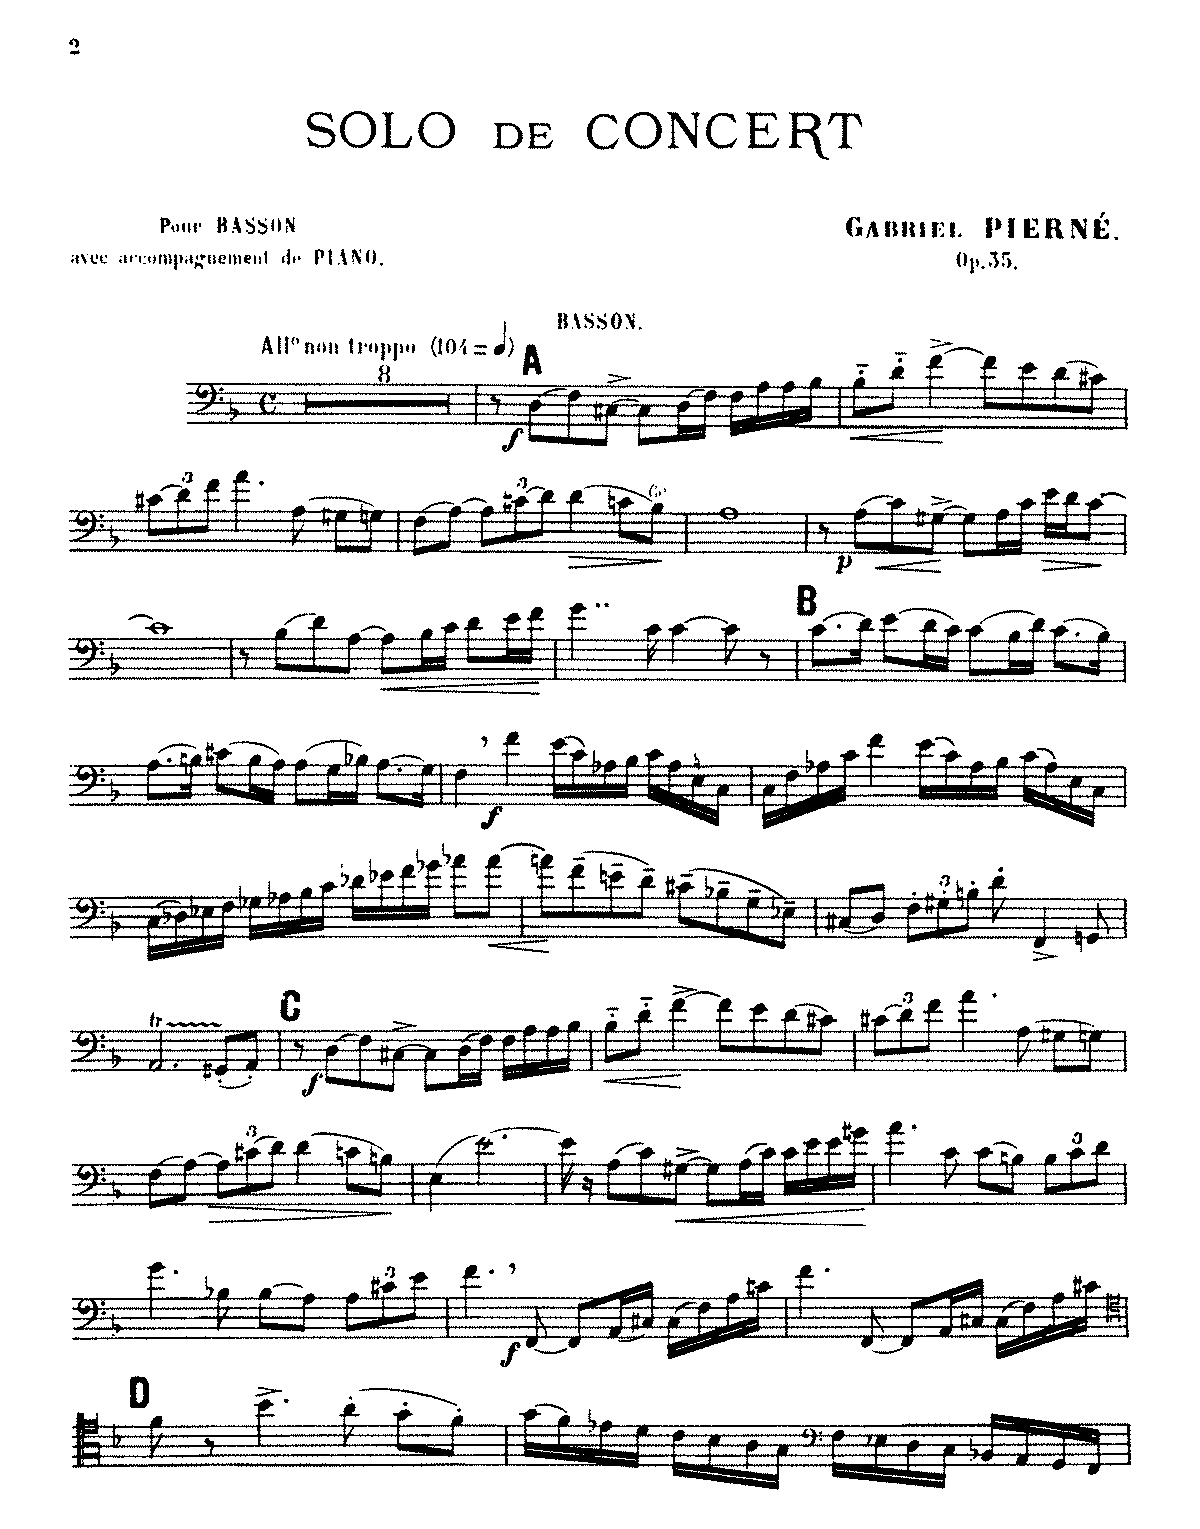 PMLP159291-Pierné - Solo de concert, Op. 35 (bassoon and piano).pdf